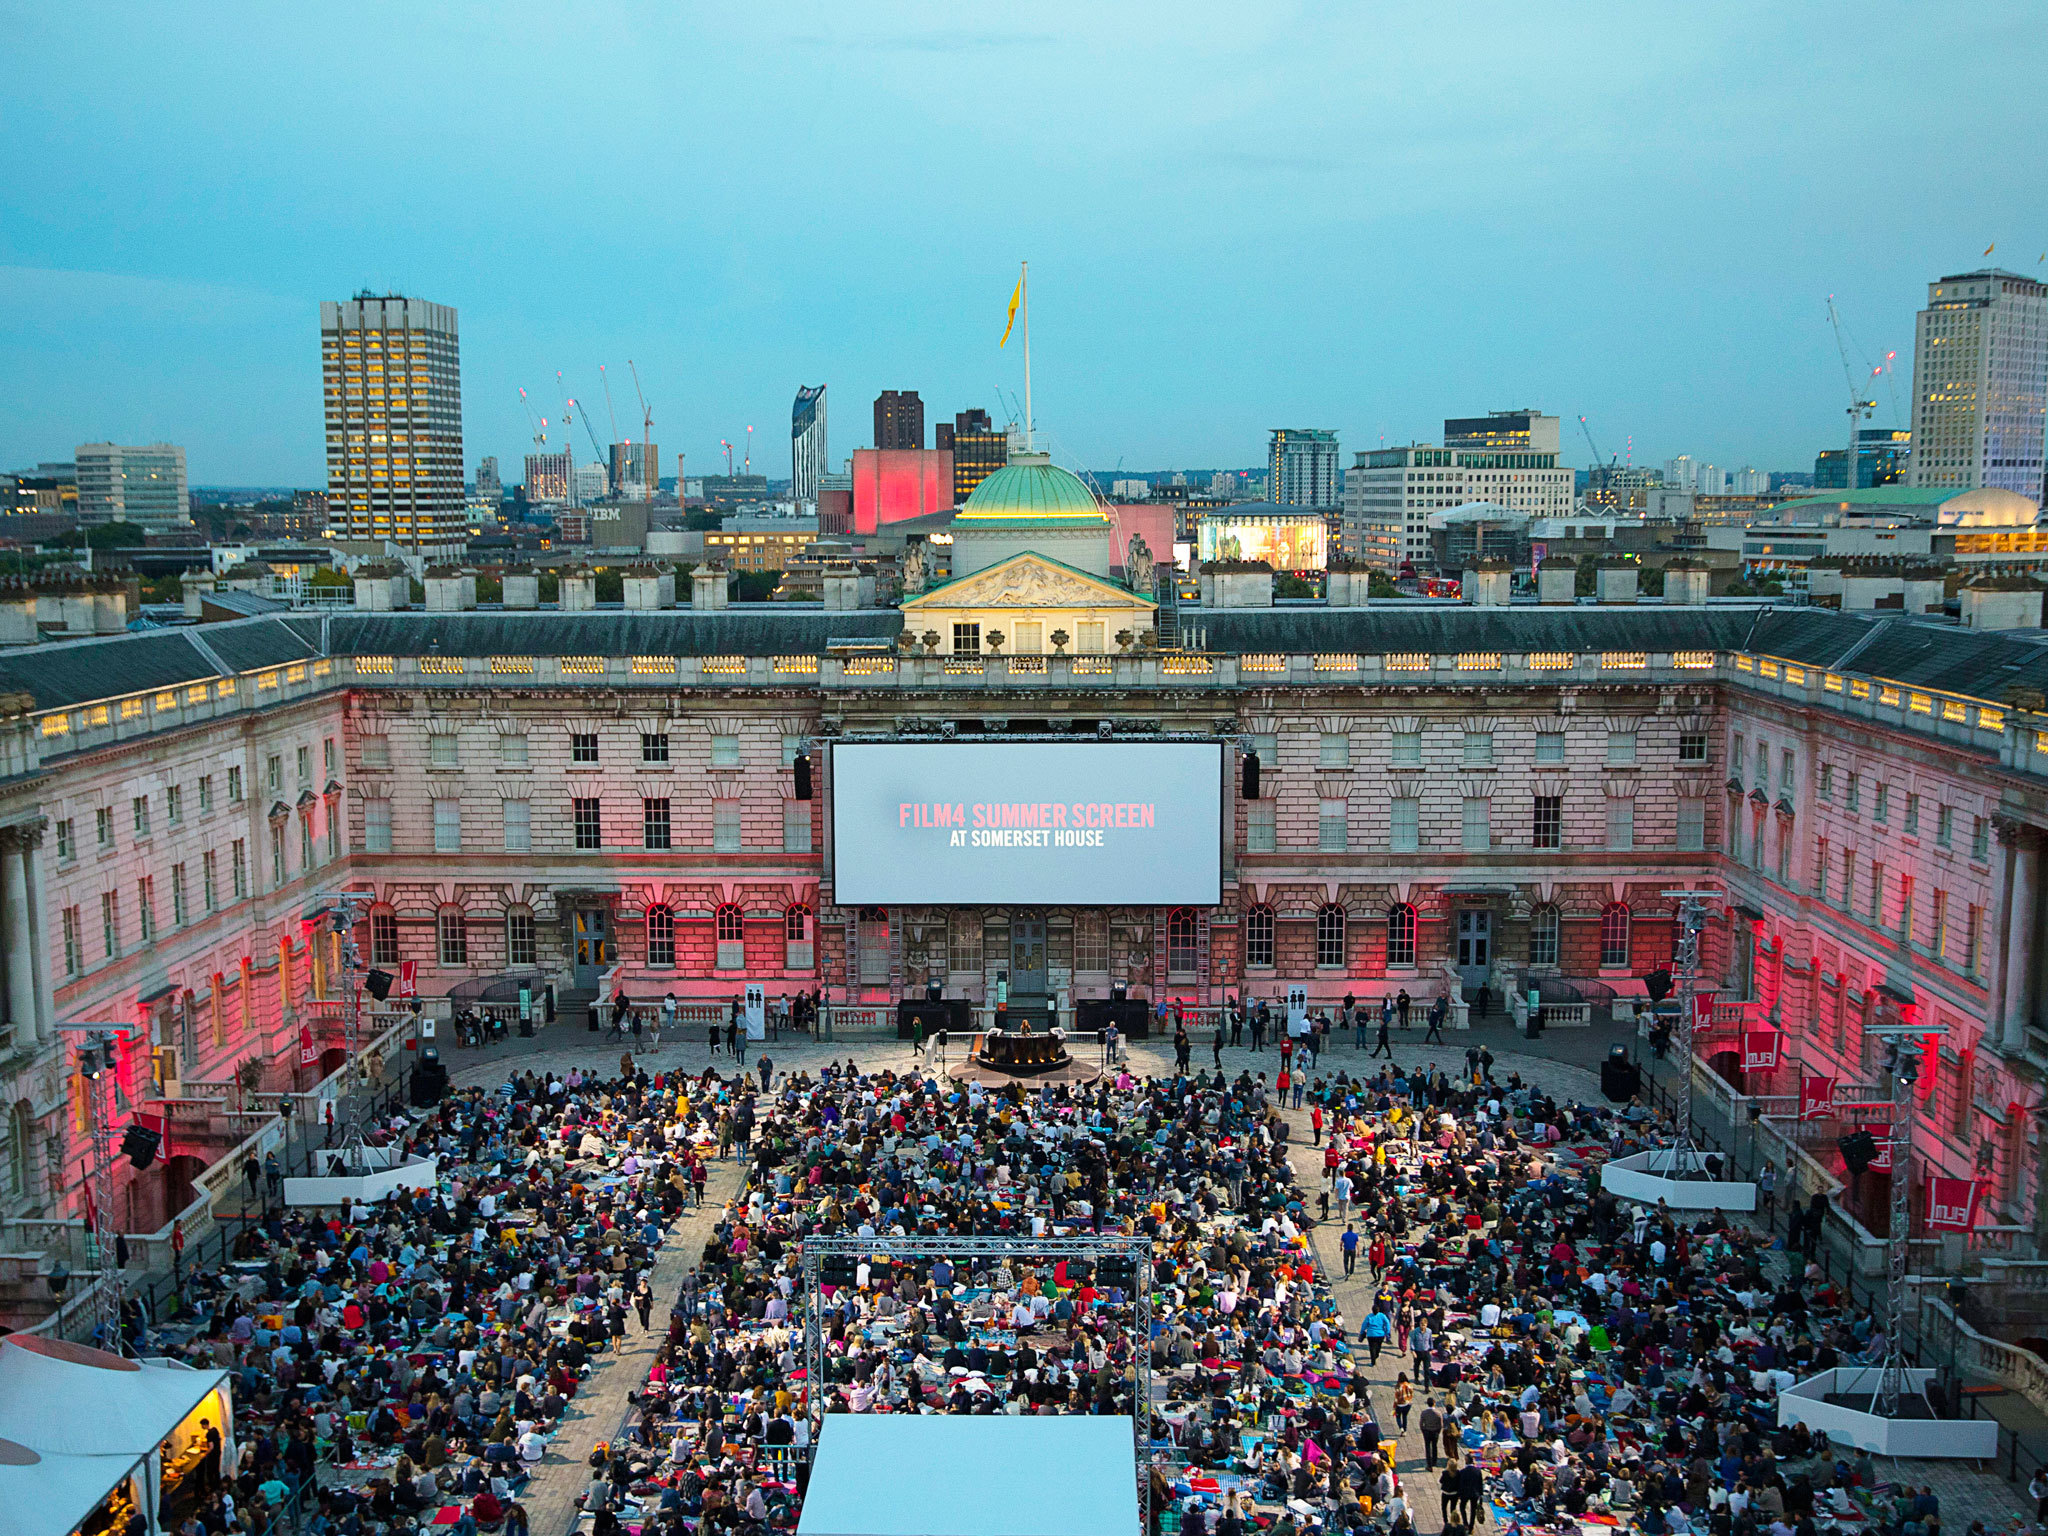 The best outdoor cinema in London